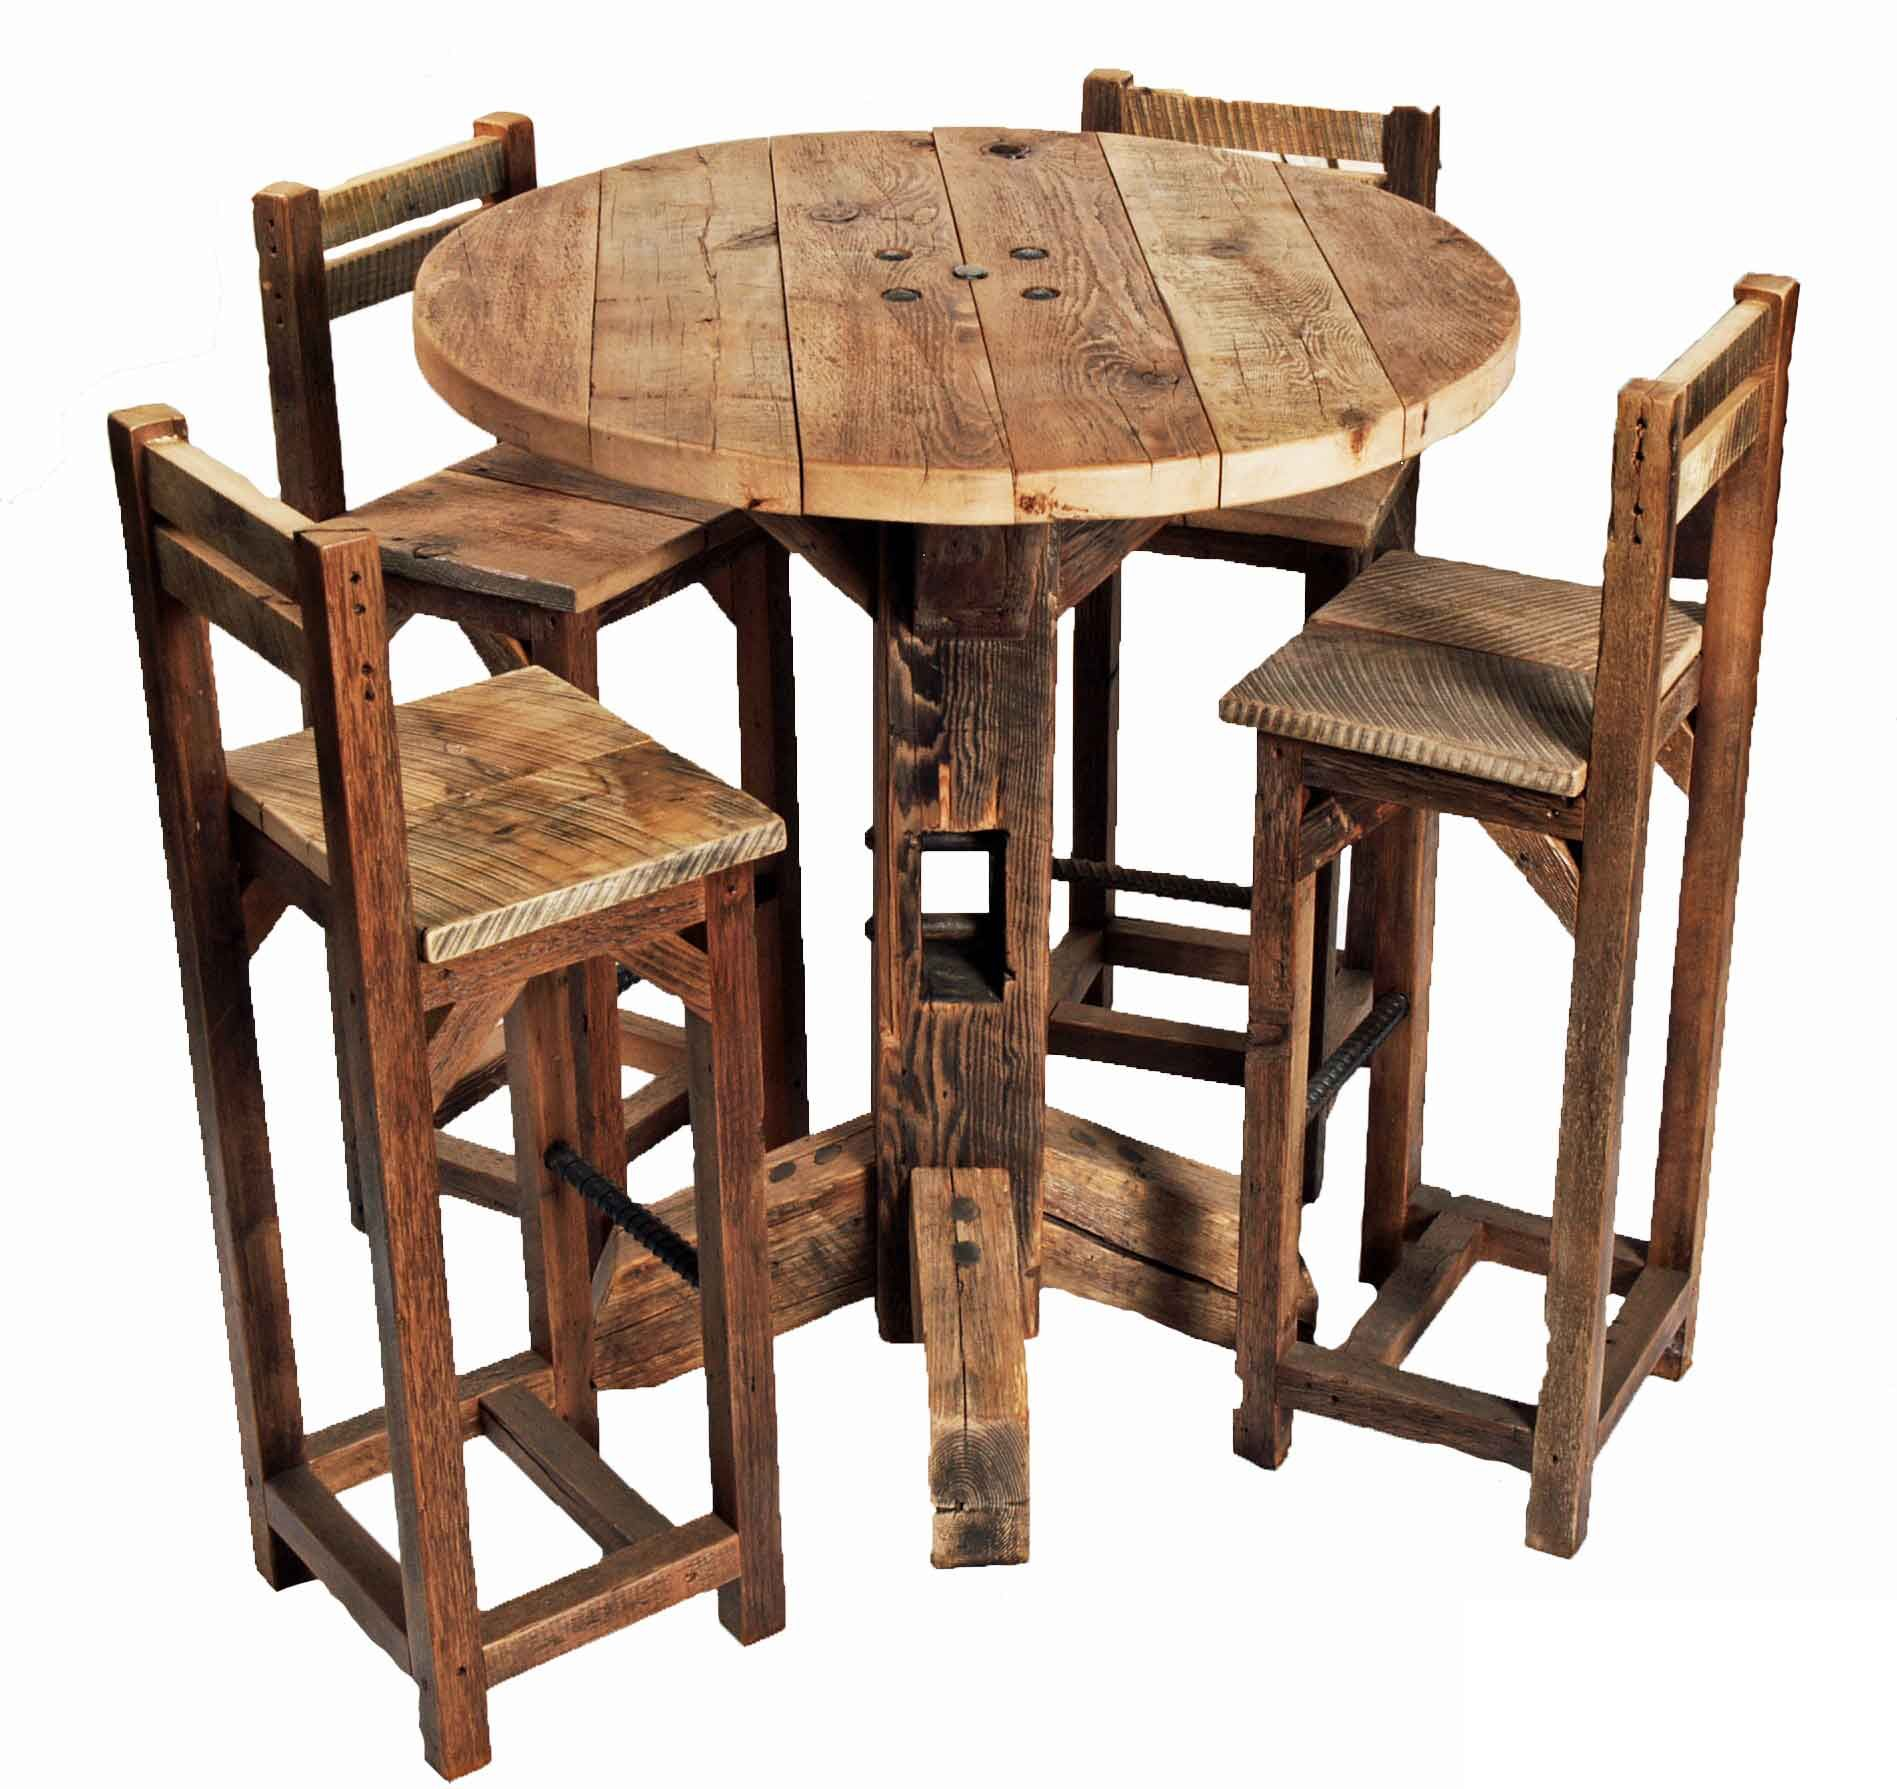 Furniture old rustic small high round top kitchen table for Small outdoor table and chairs